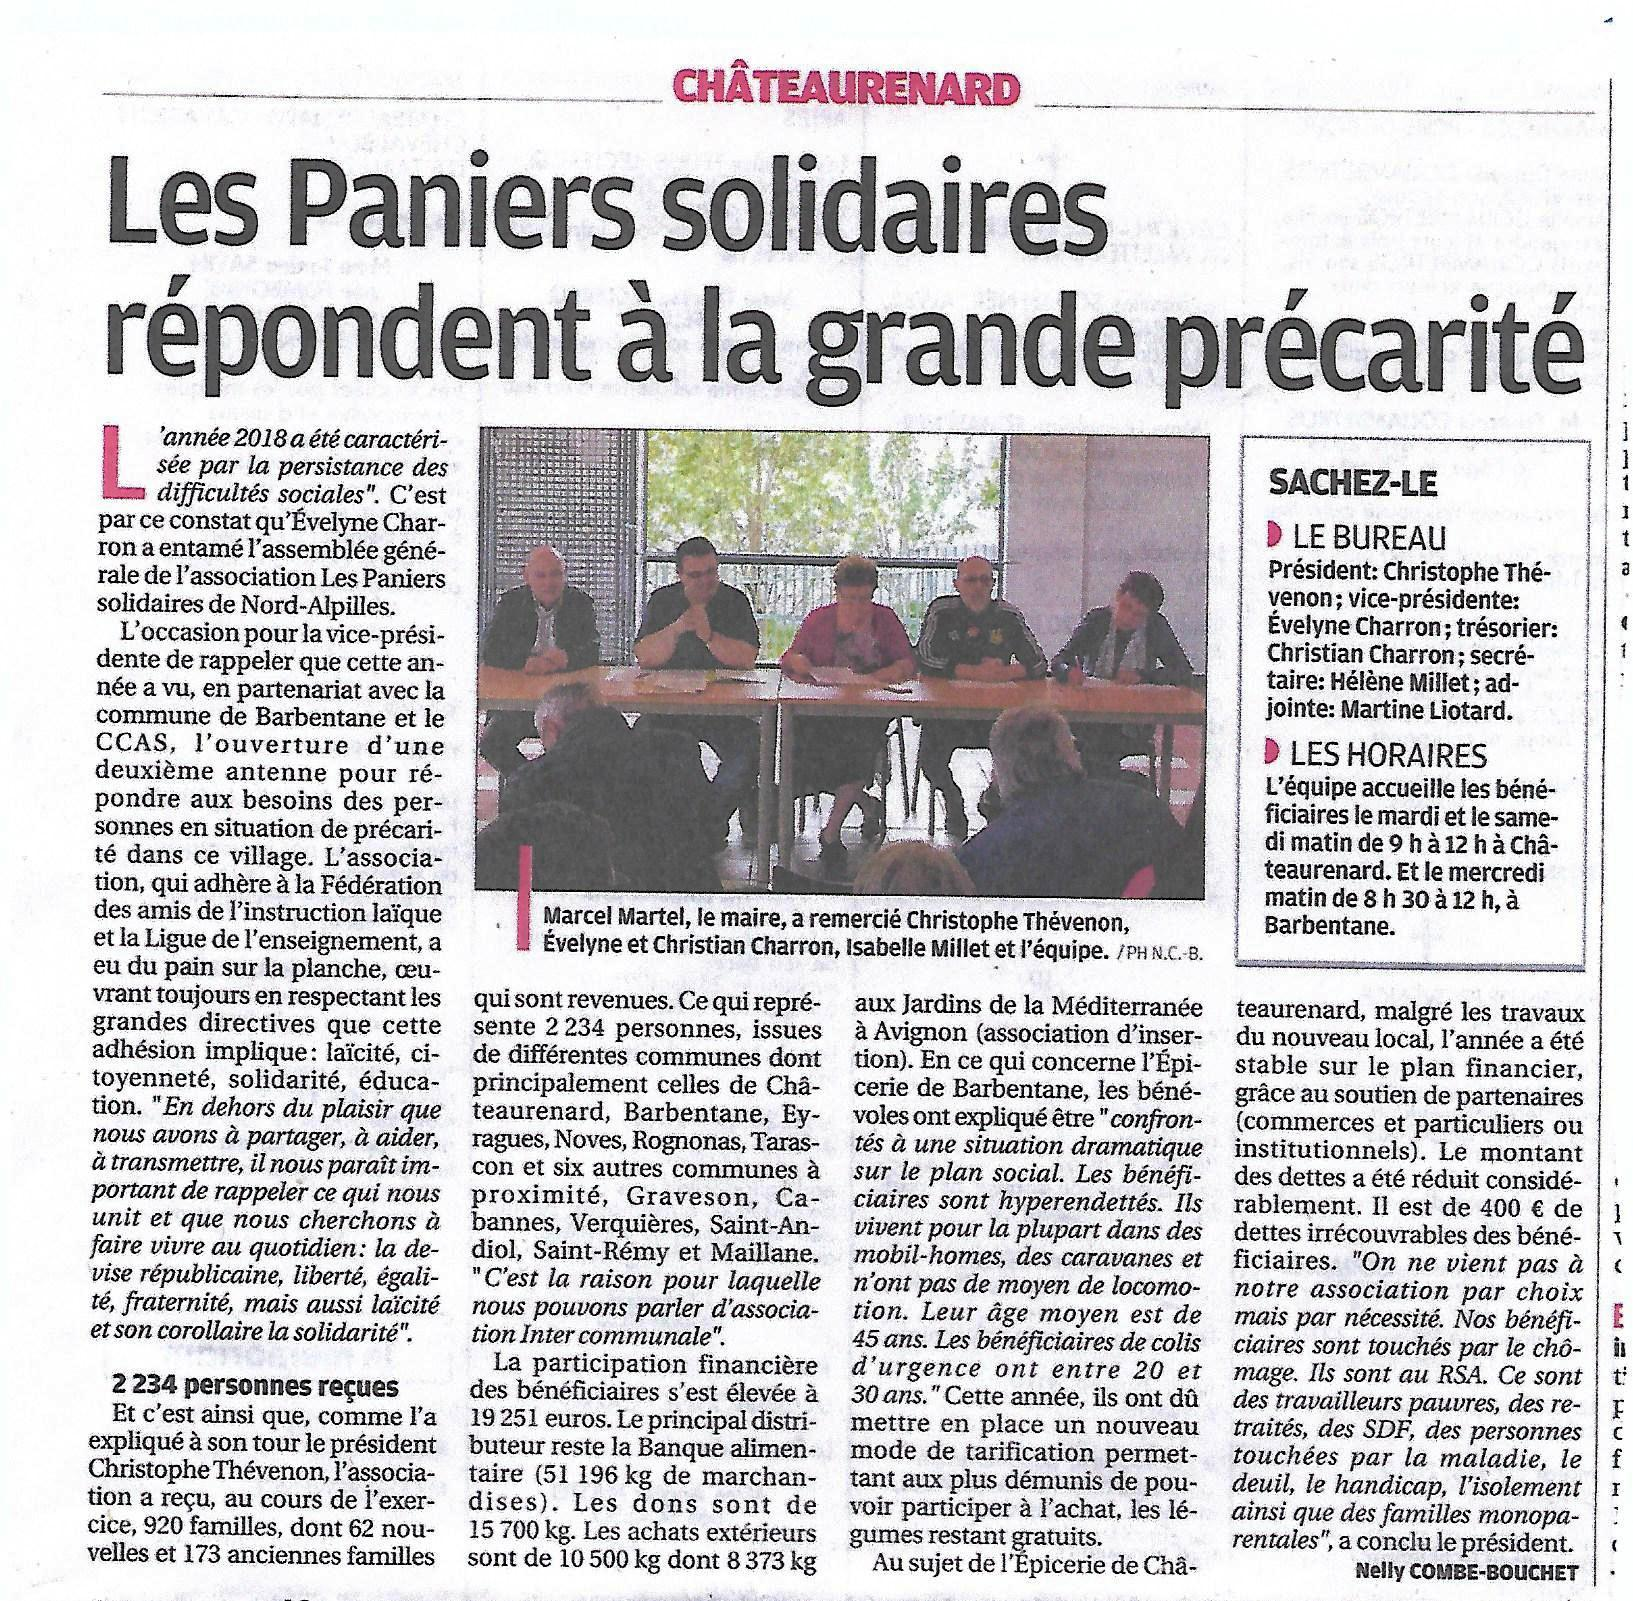 Château Paniers solidaires